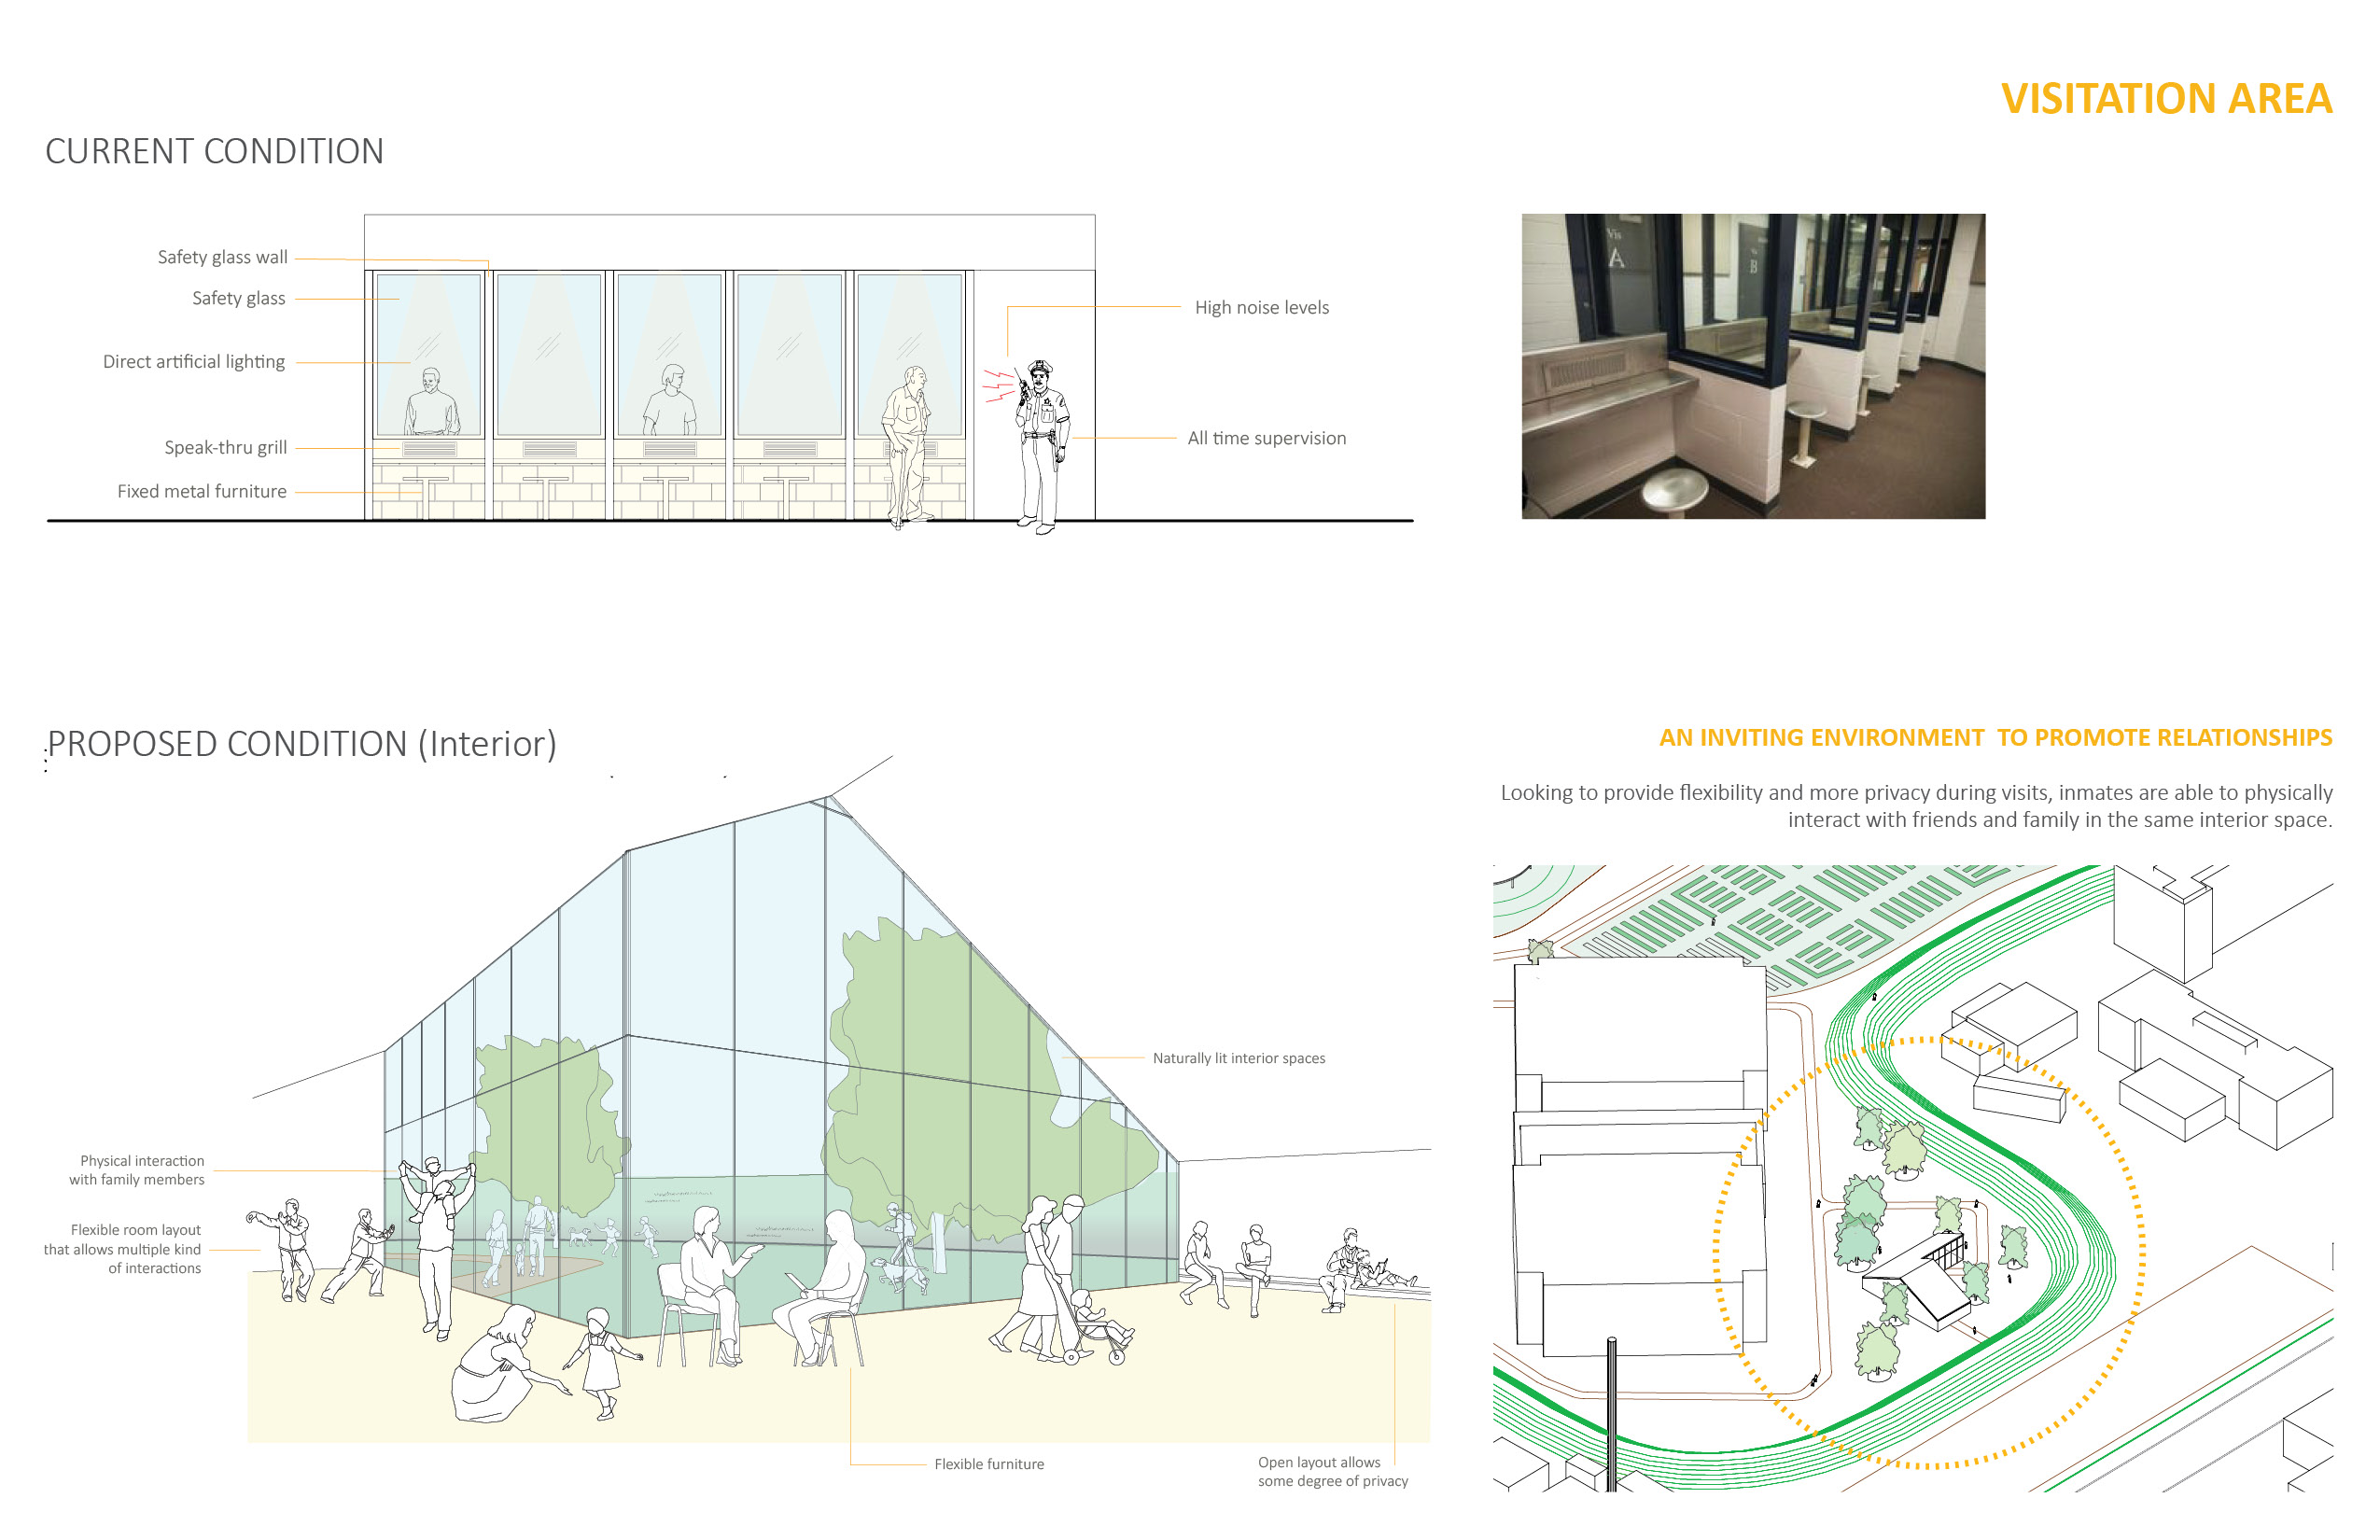 Alba Quezada - Campus Proposal - Visitation Area (Interior)